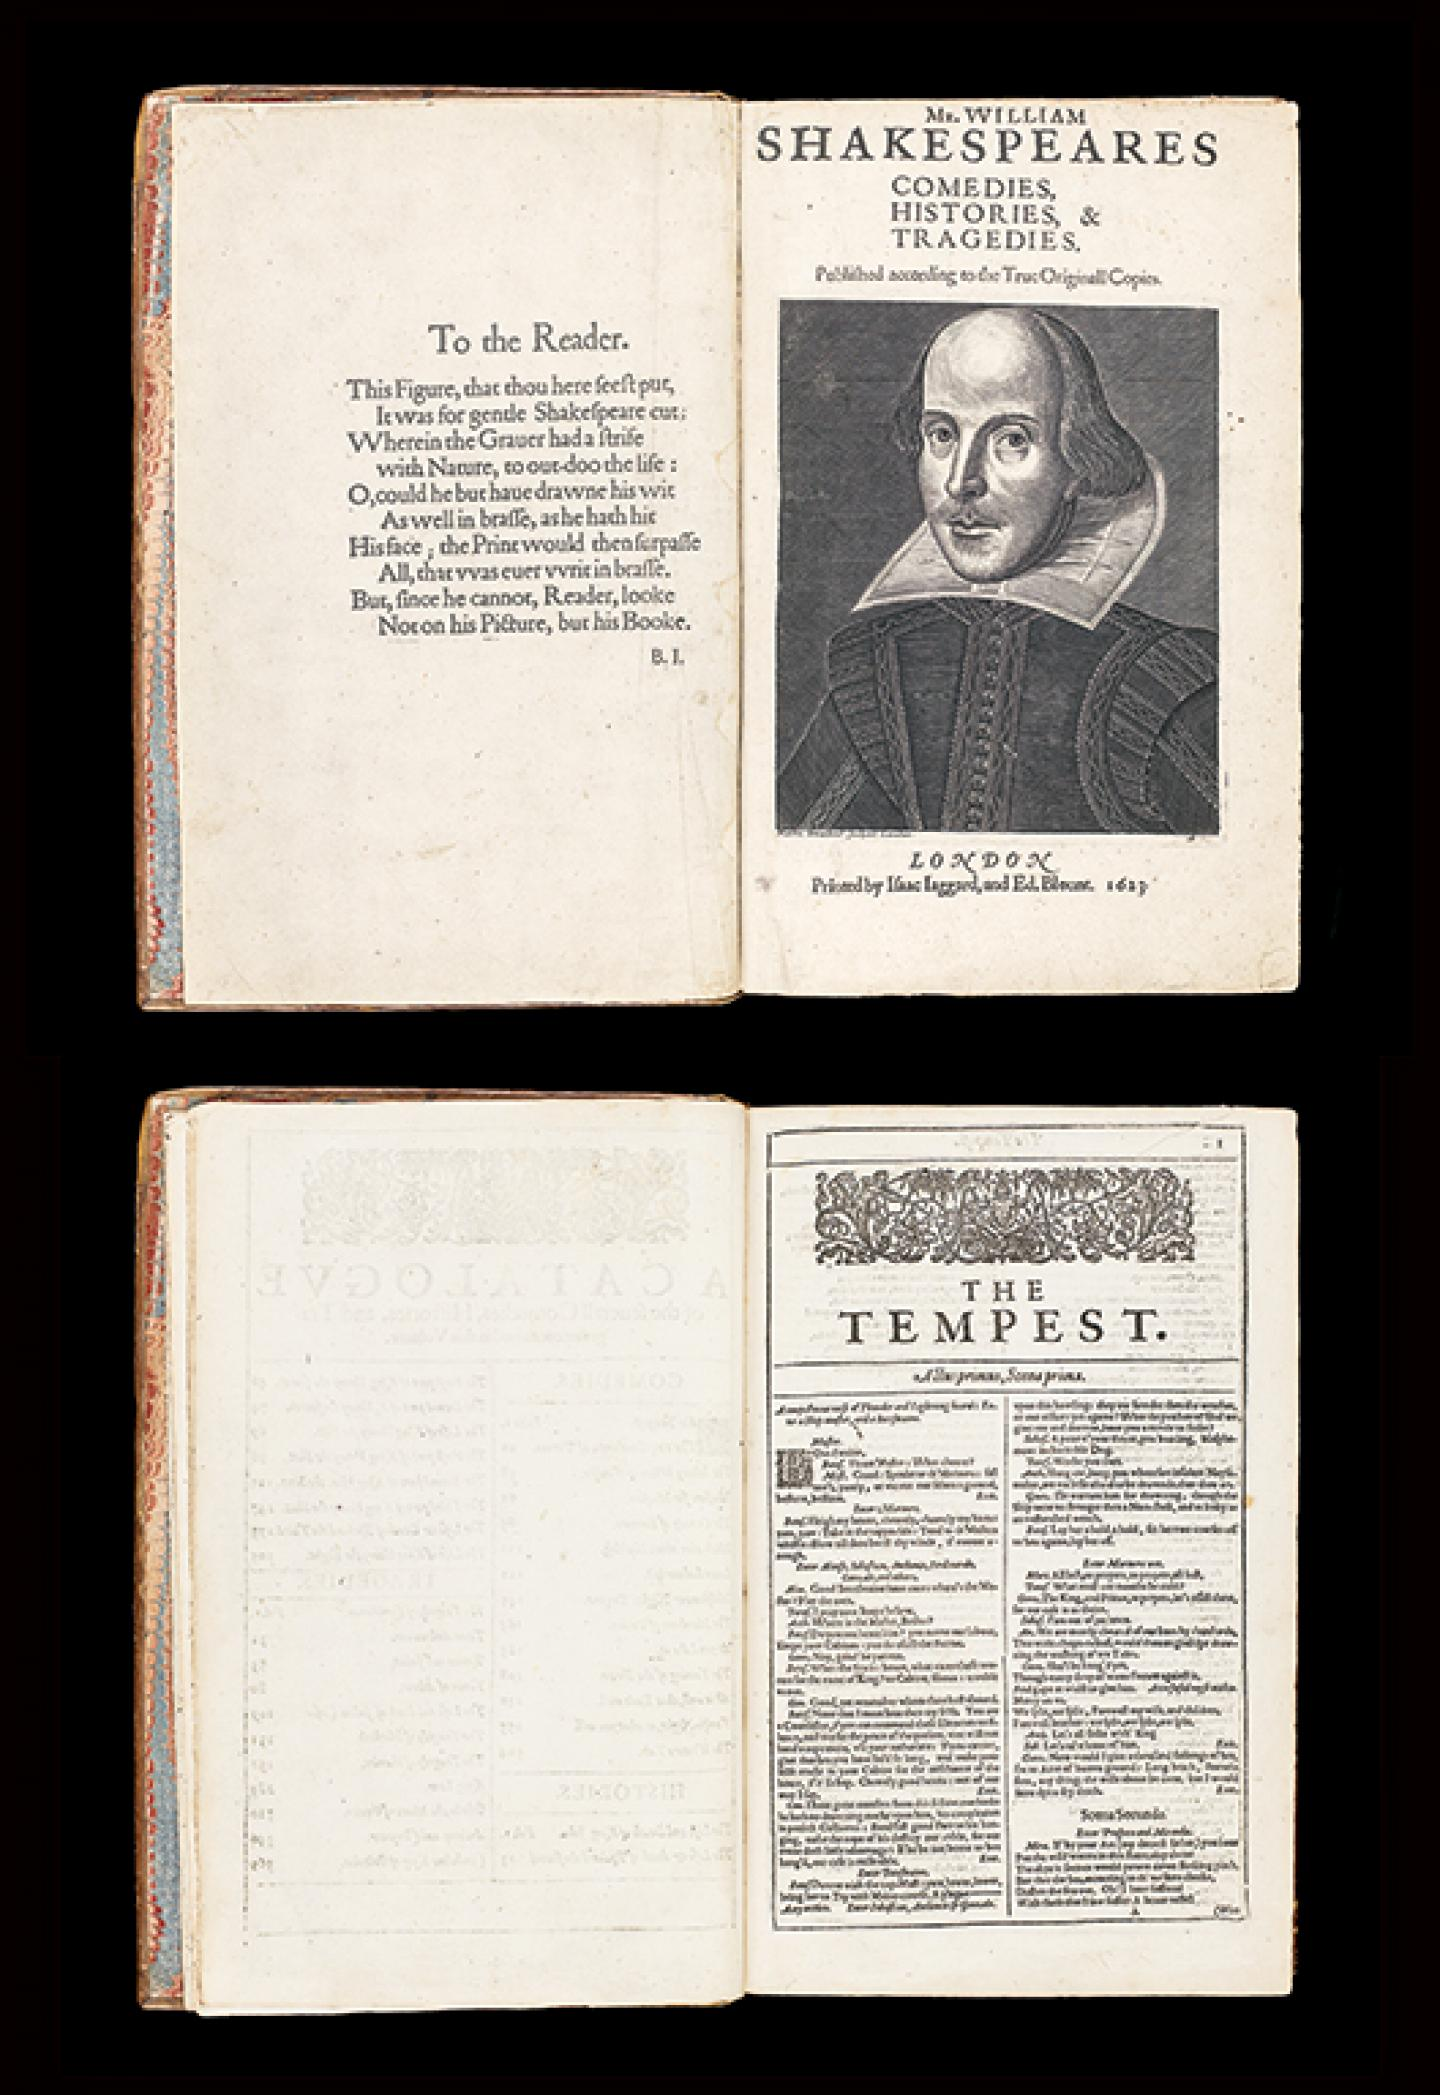 WILLIAM SHAKESPEARE (1564-1616) Mr. William Shakespeares Comedies, Histories, & Tragedies Londres, printed by William Iaggard, and Ed. Blount, 1623, première édition collective dite « First Folio », un des mythes de la bibliophilie internationale Cologny, Fondation Martin Bodmer